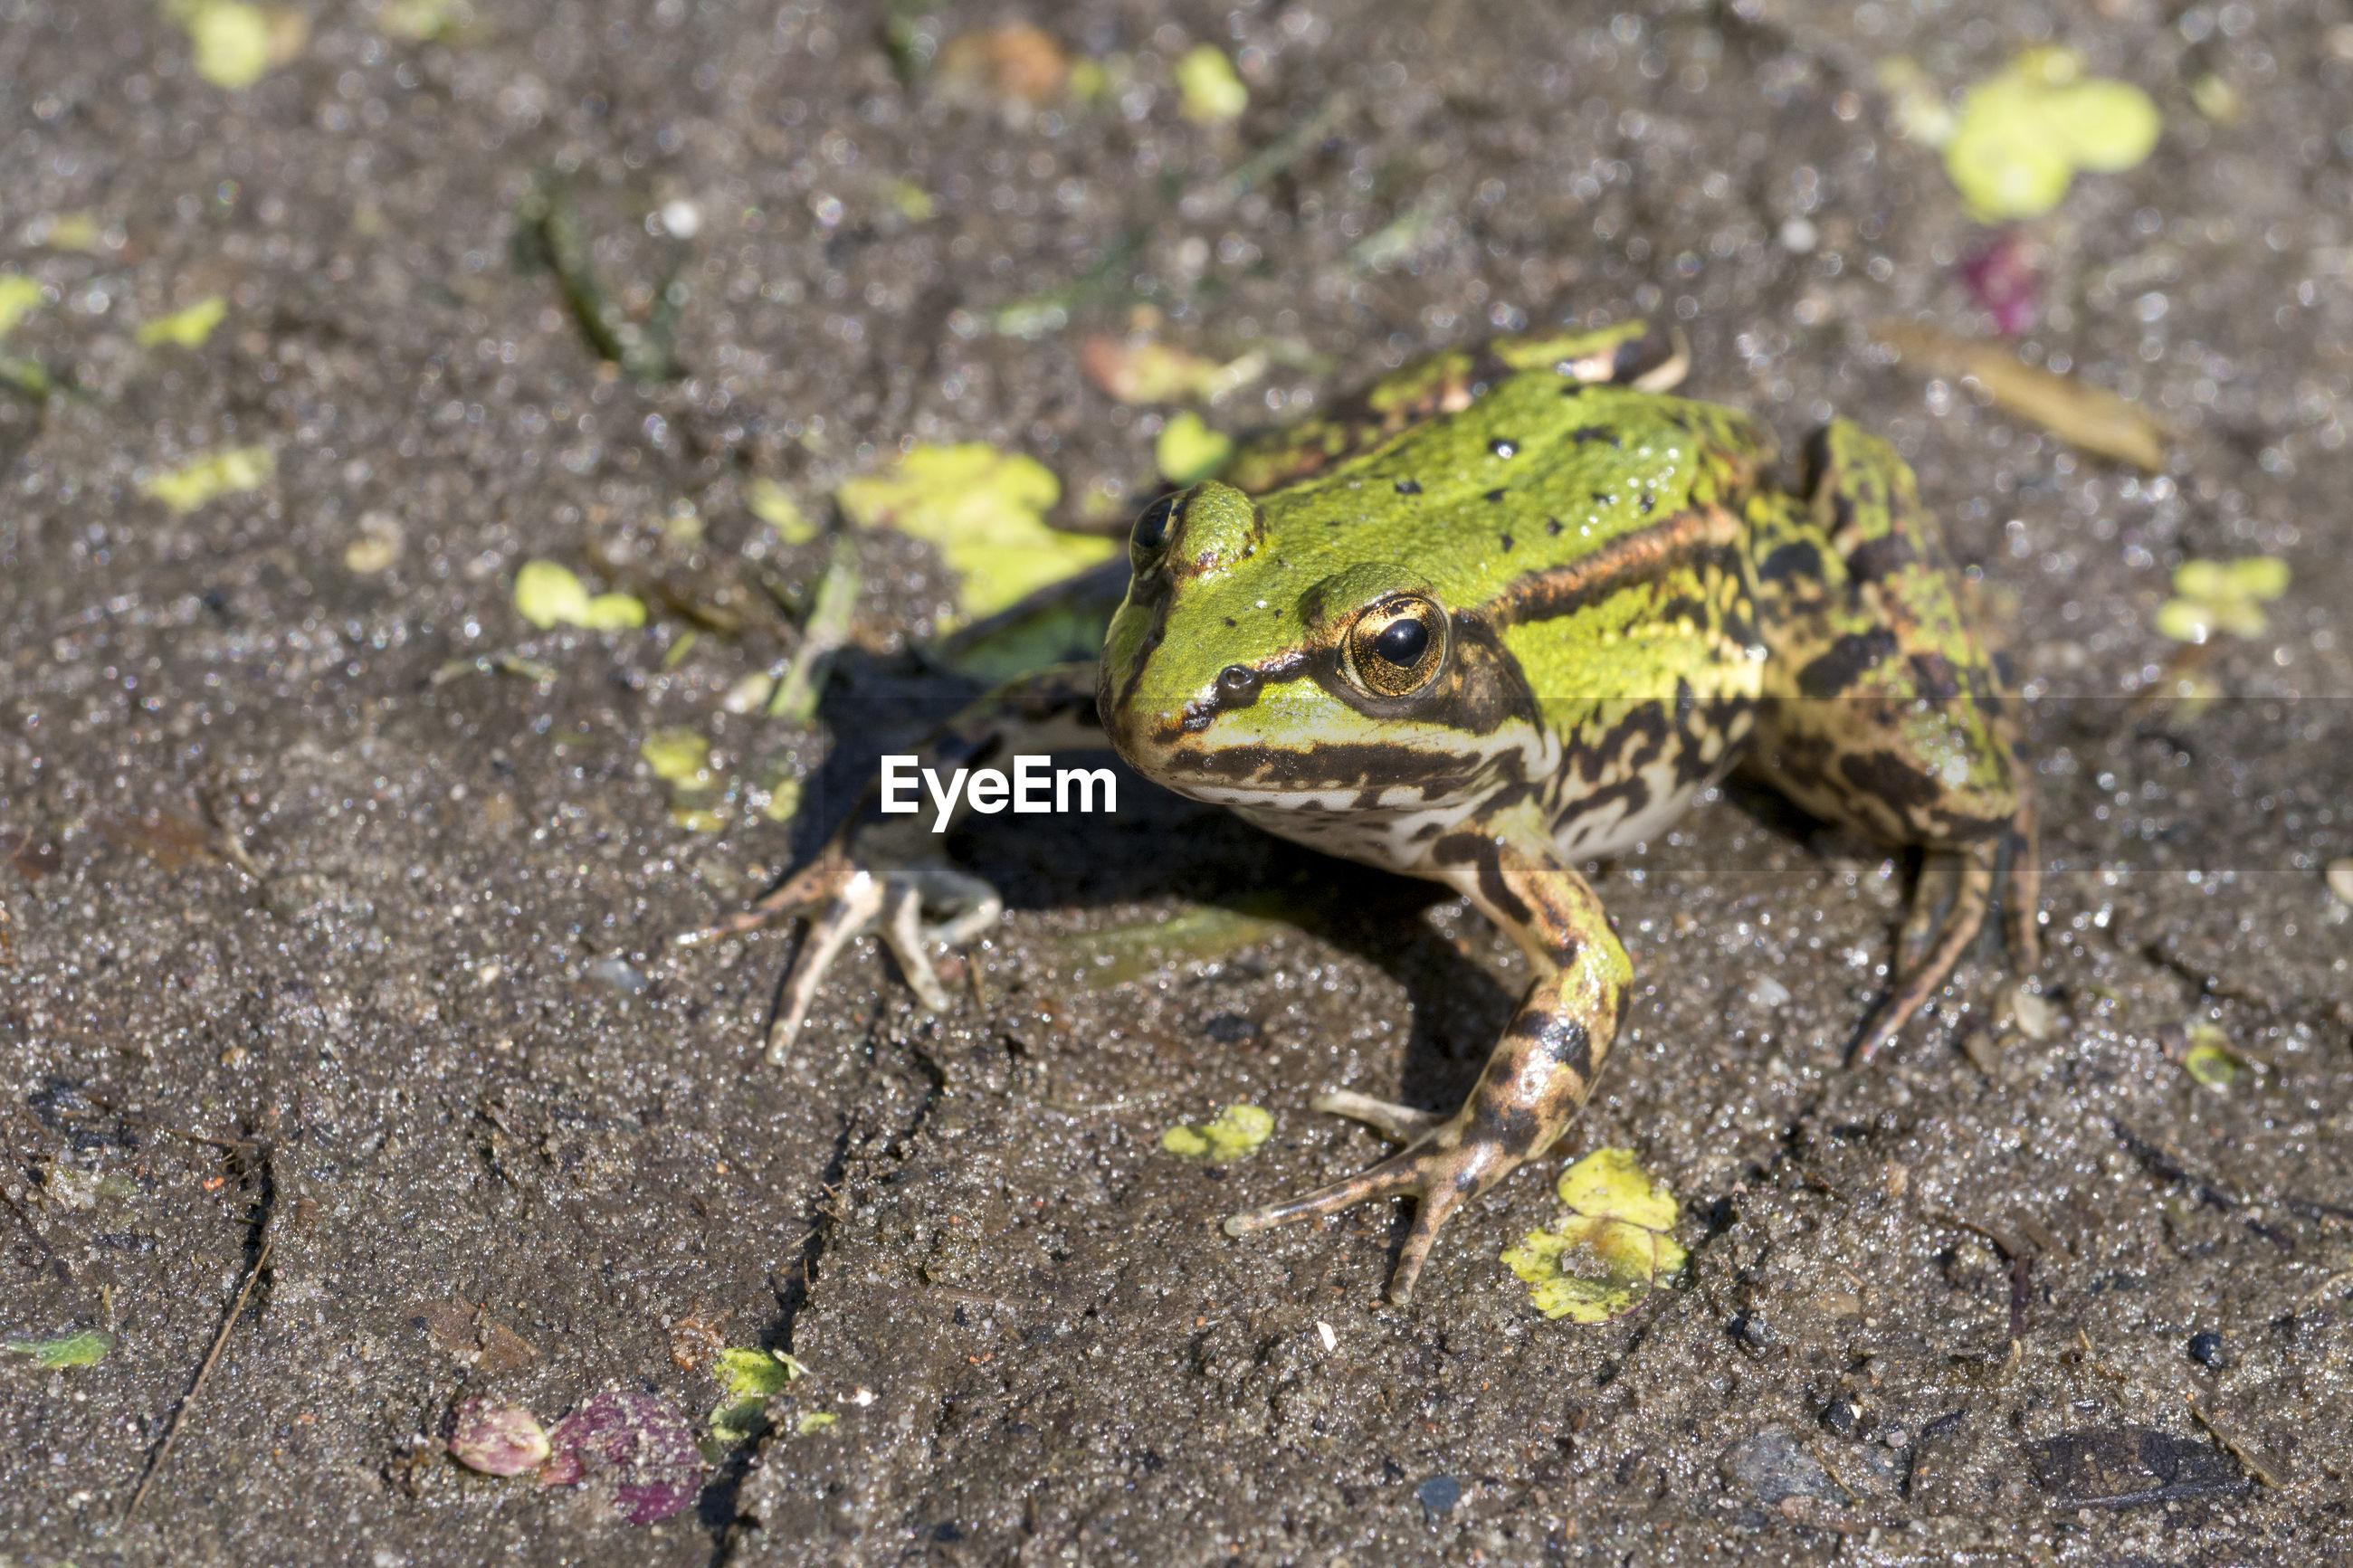 Close-up of frog on field